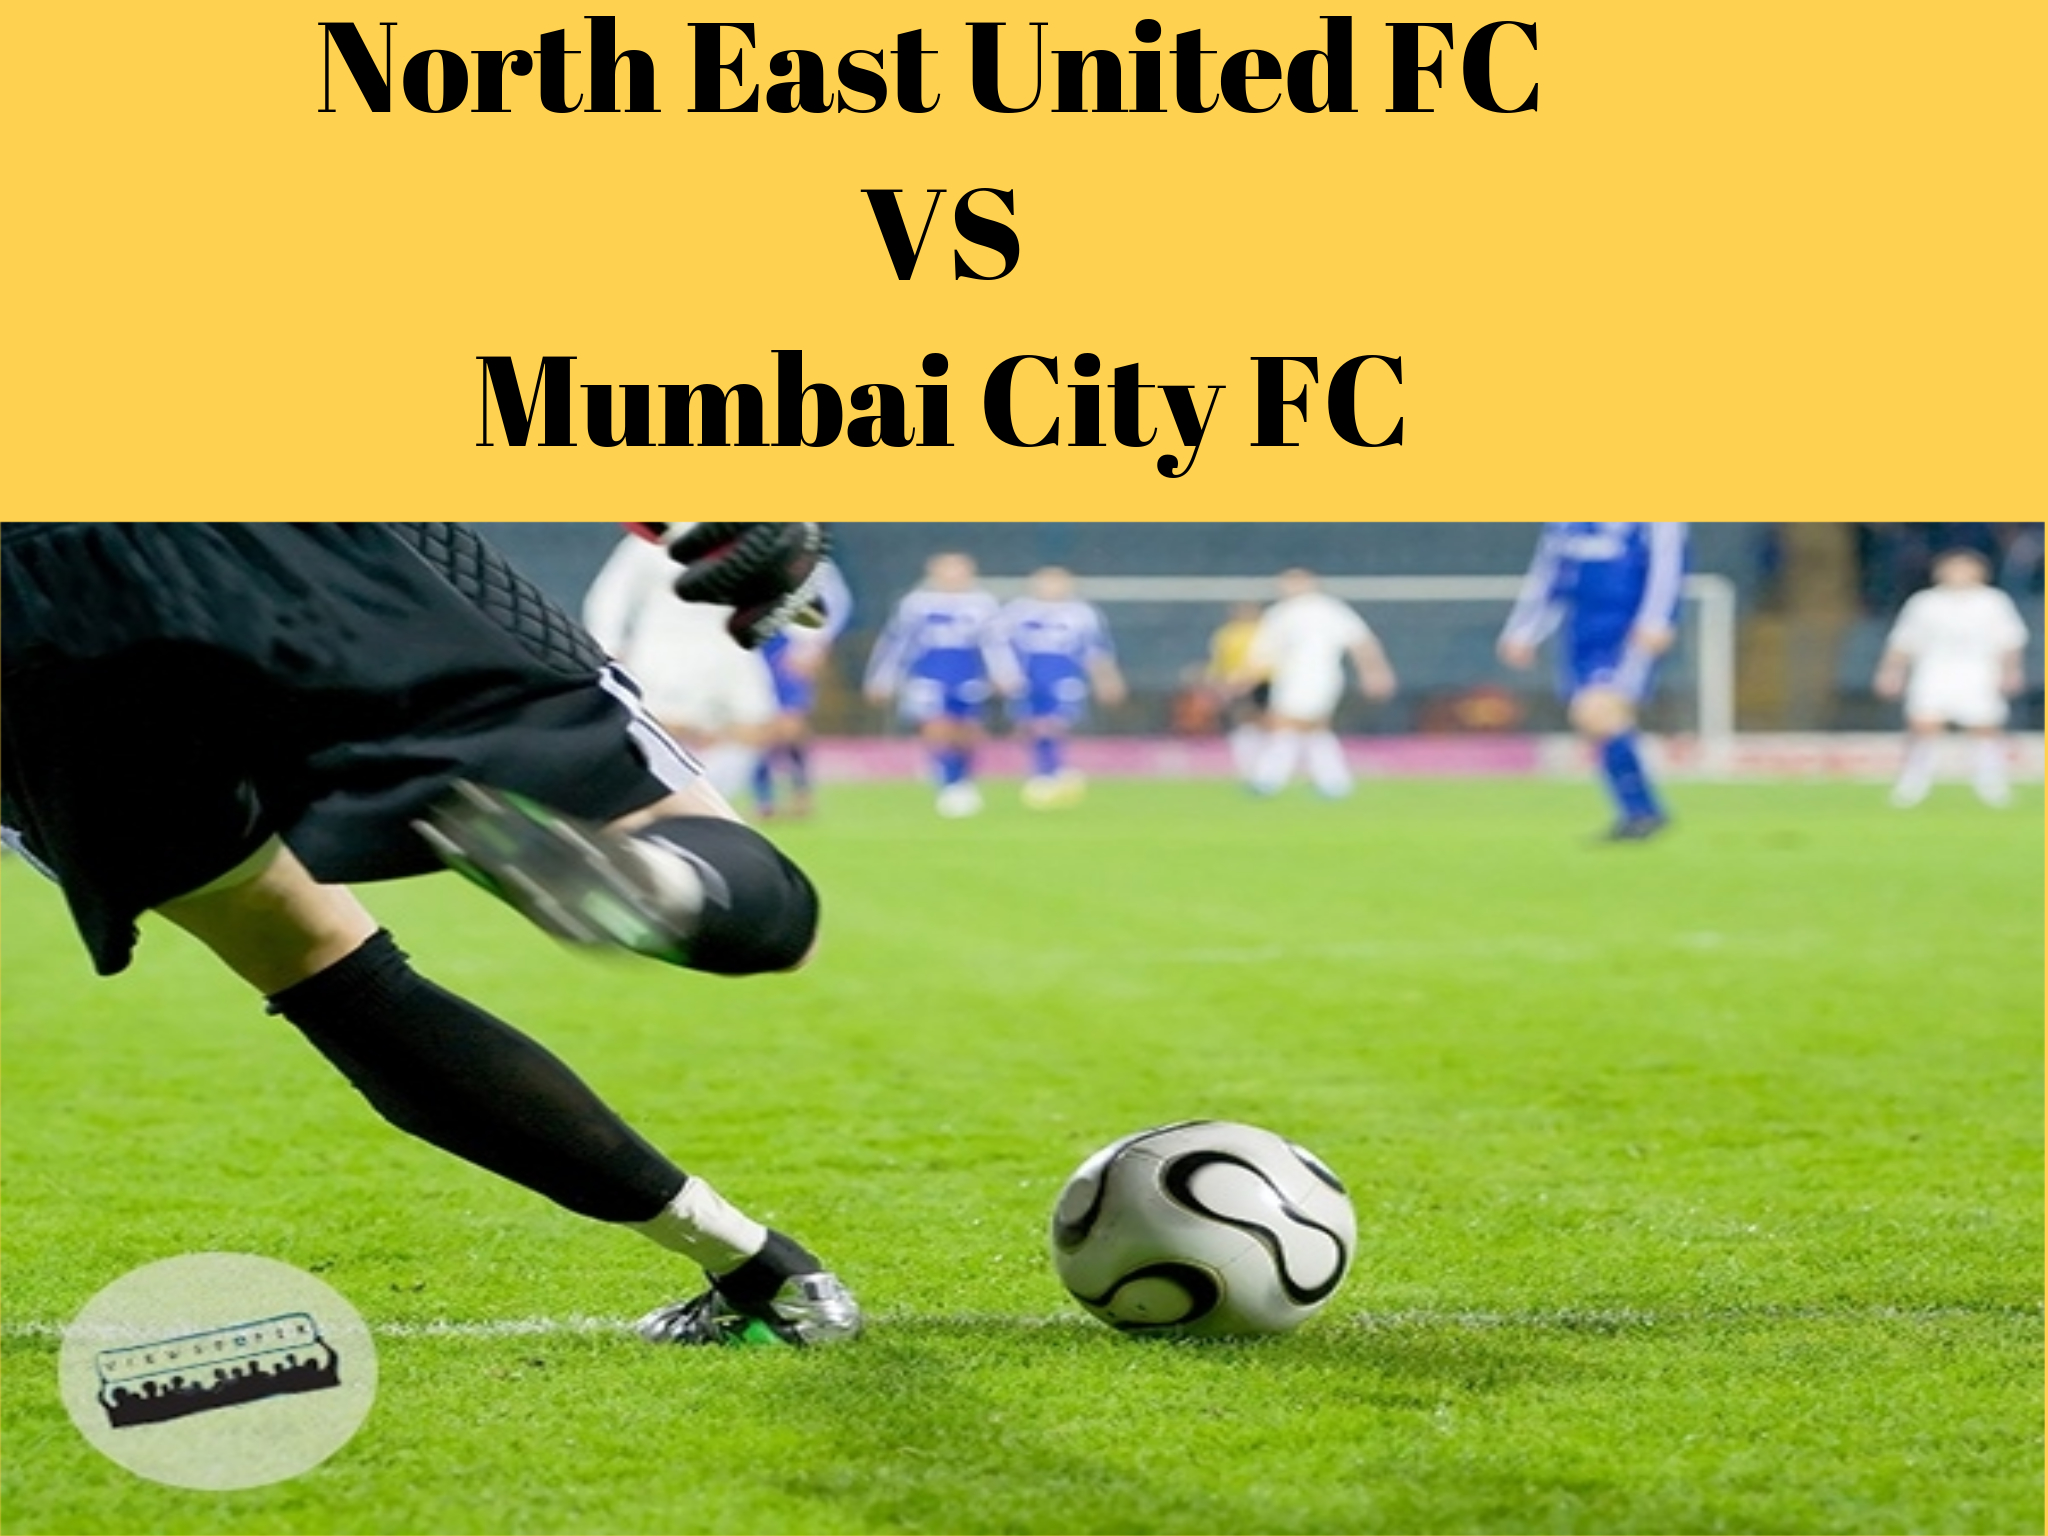 North East United FC VS Mumbai City FC